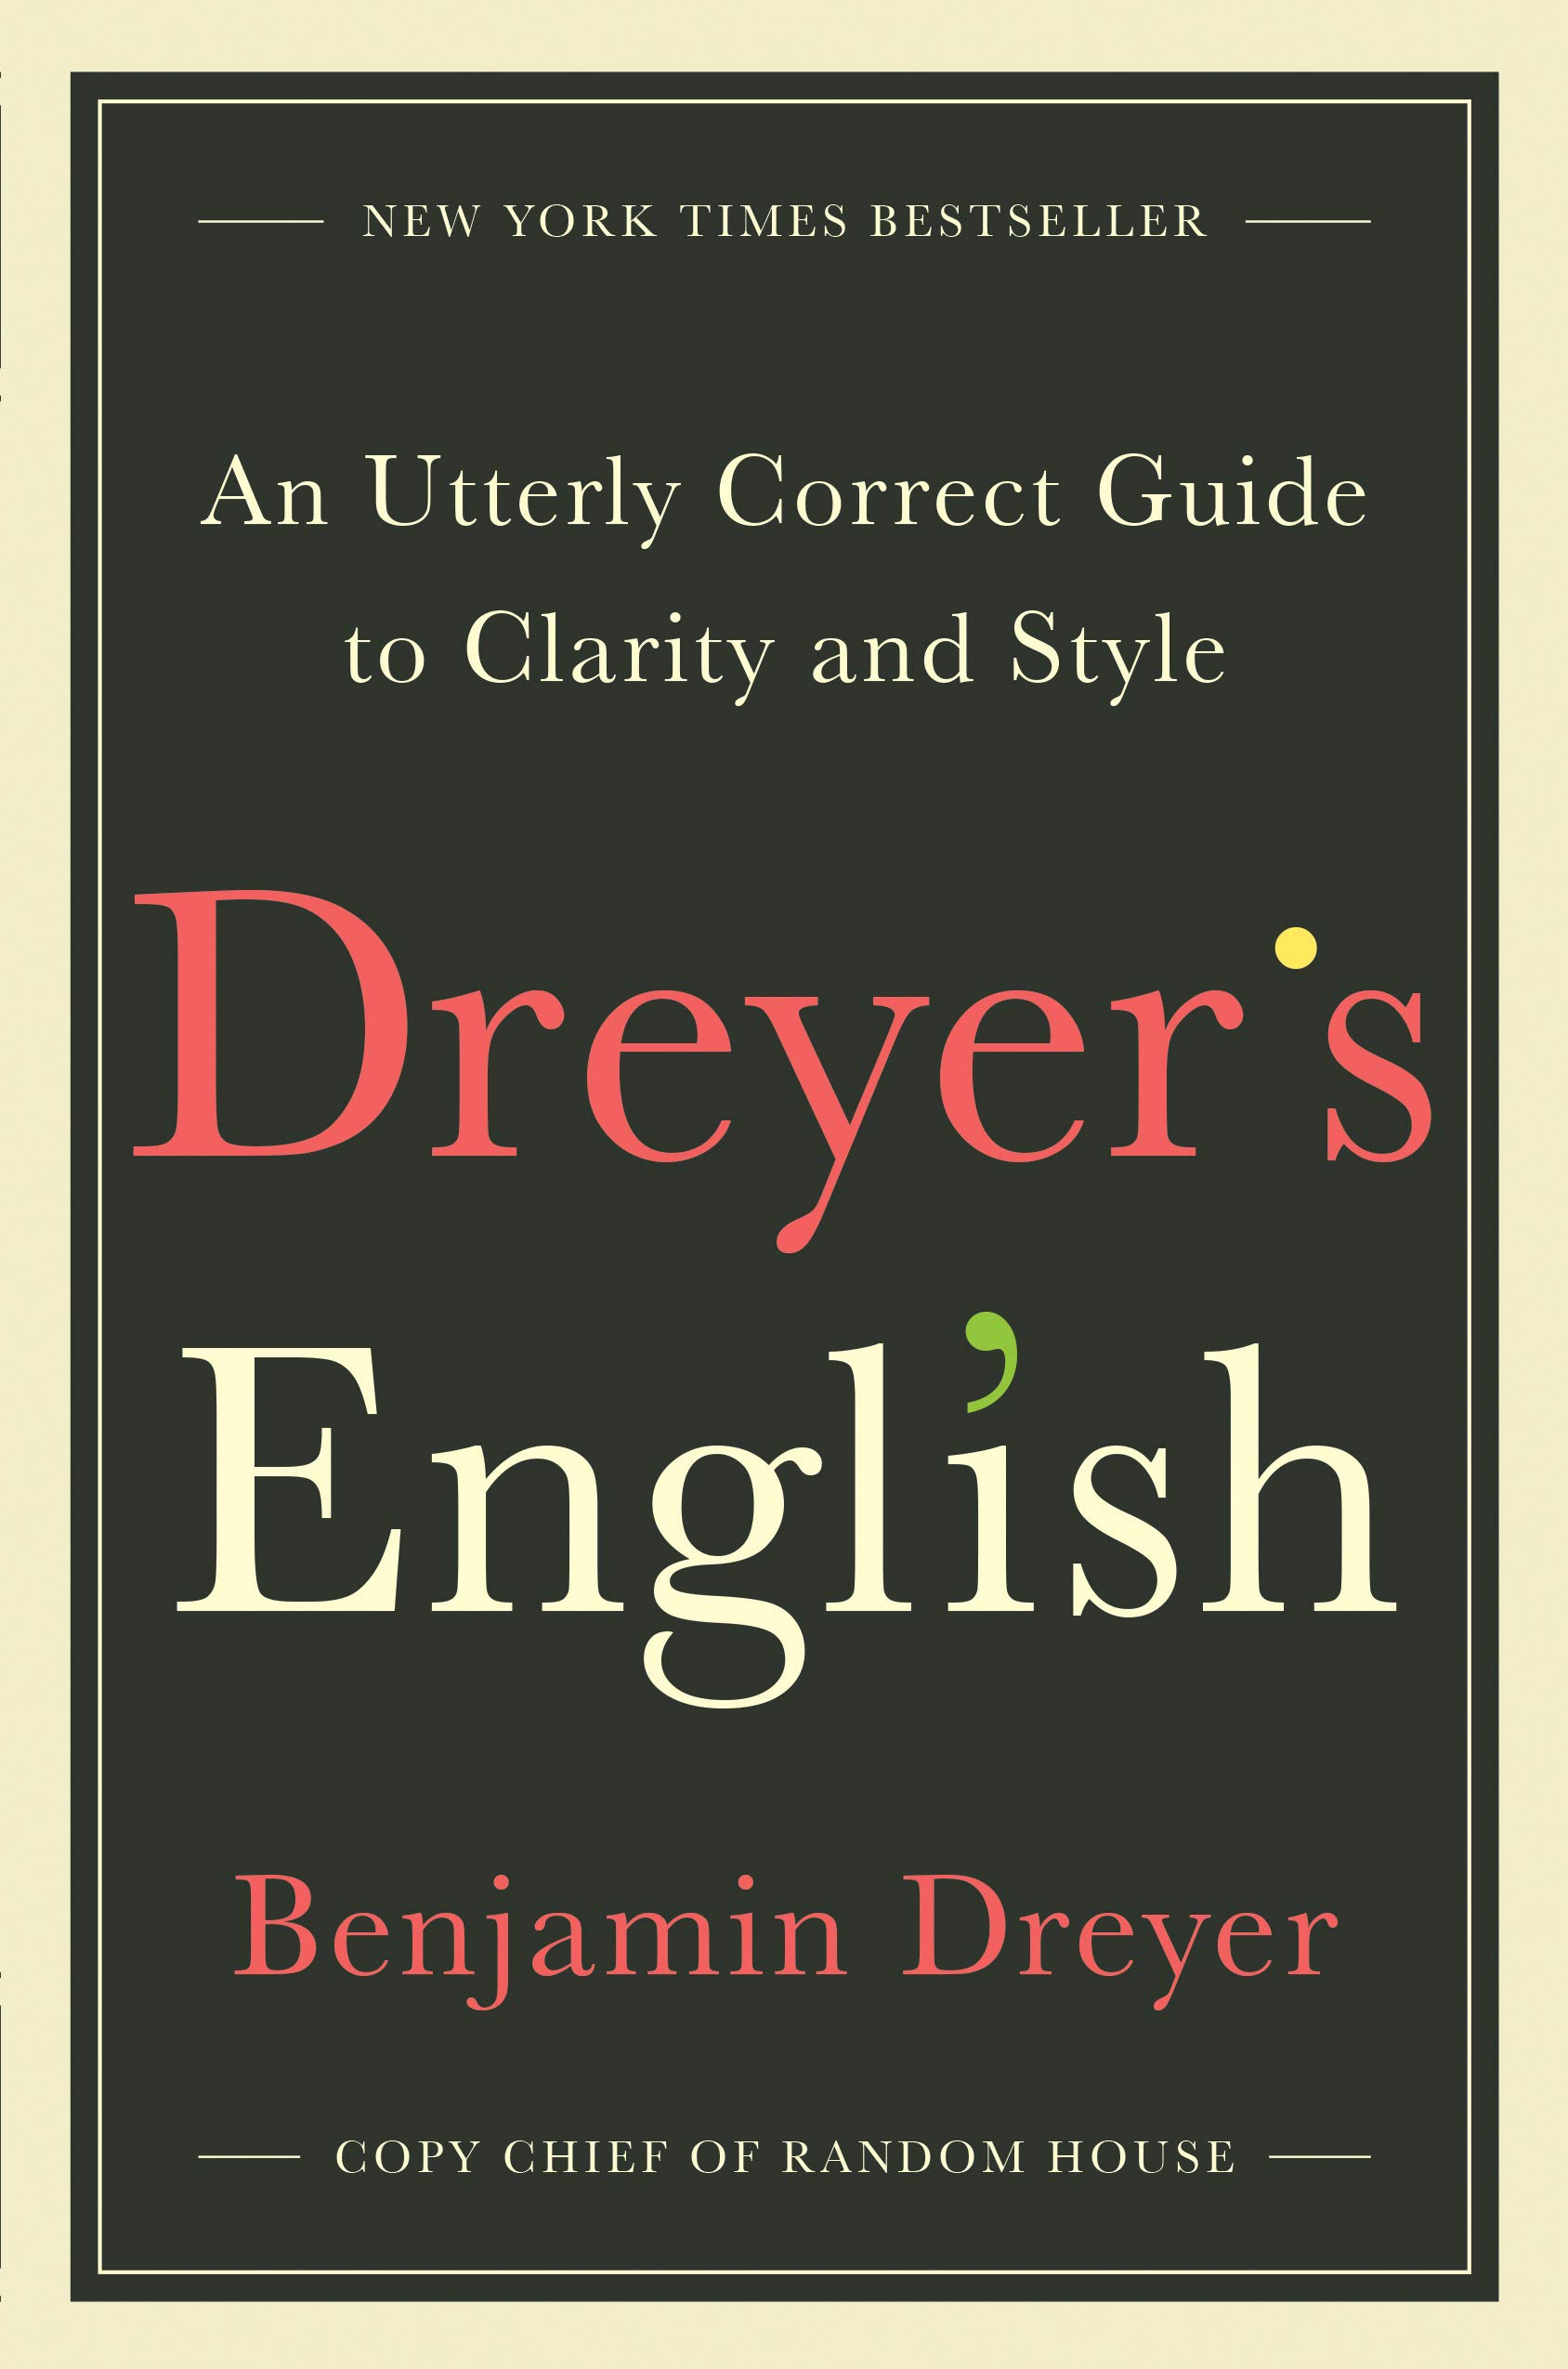 Dreyer's English, Benjamin Dreyer